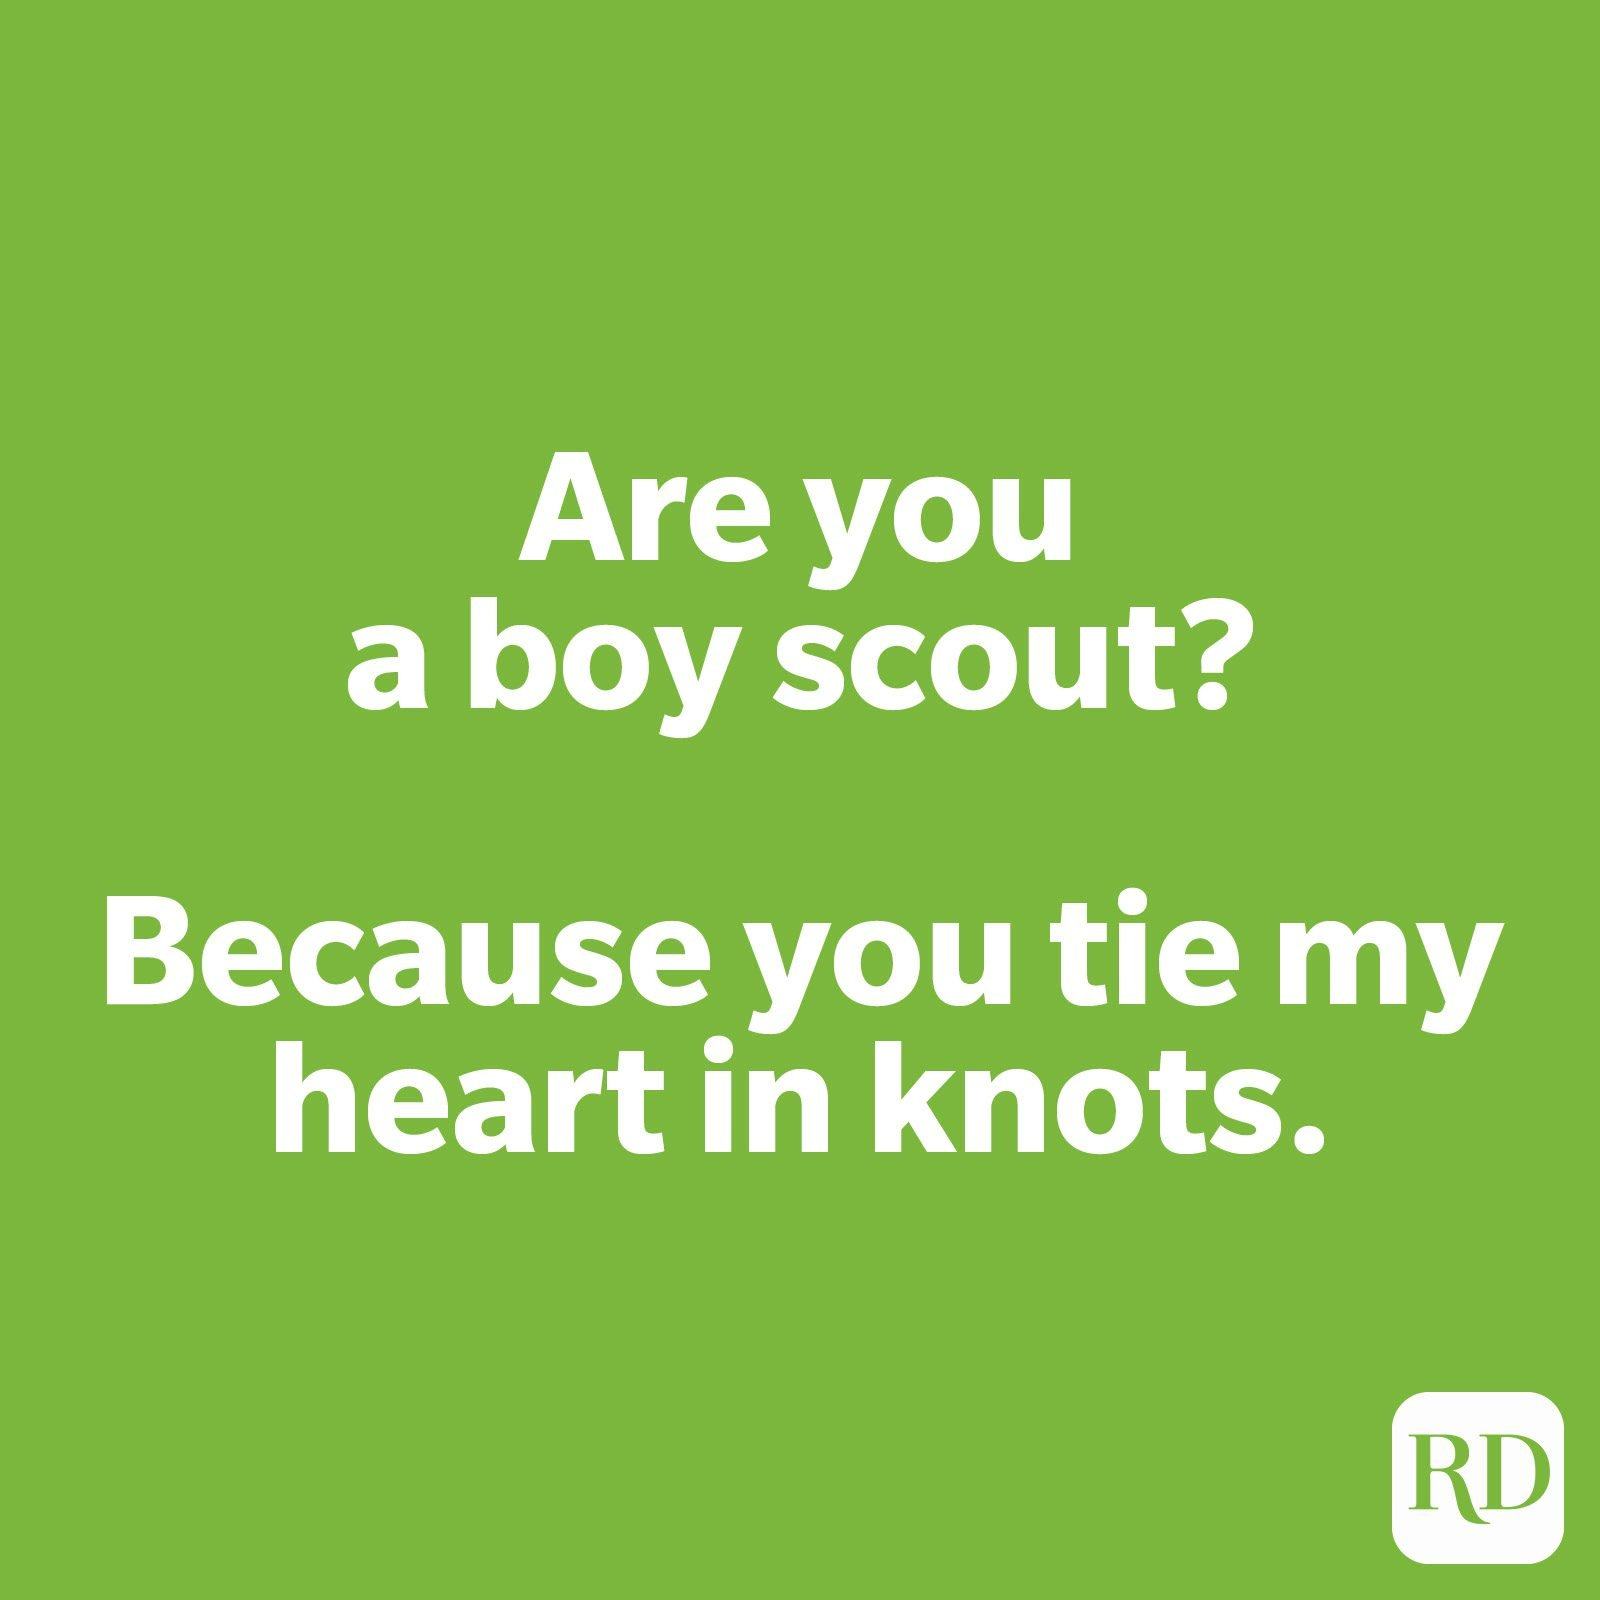 Are you a boy scout because you tie my heart in knots.